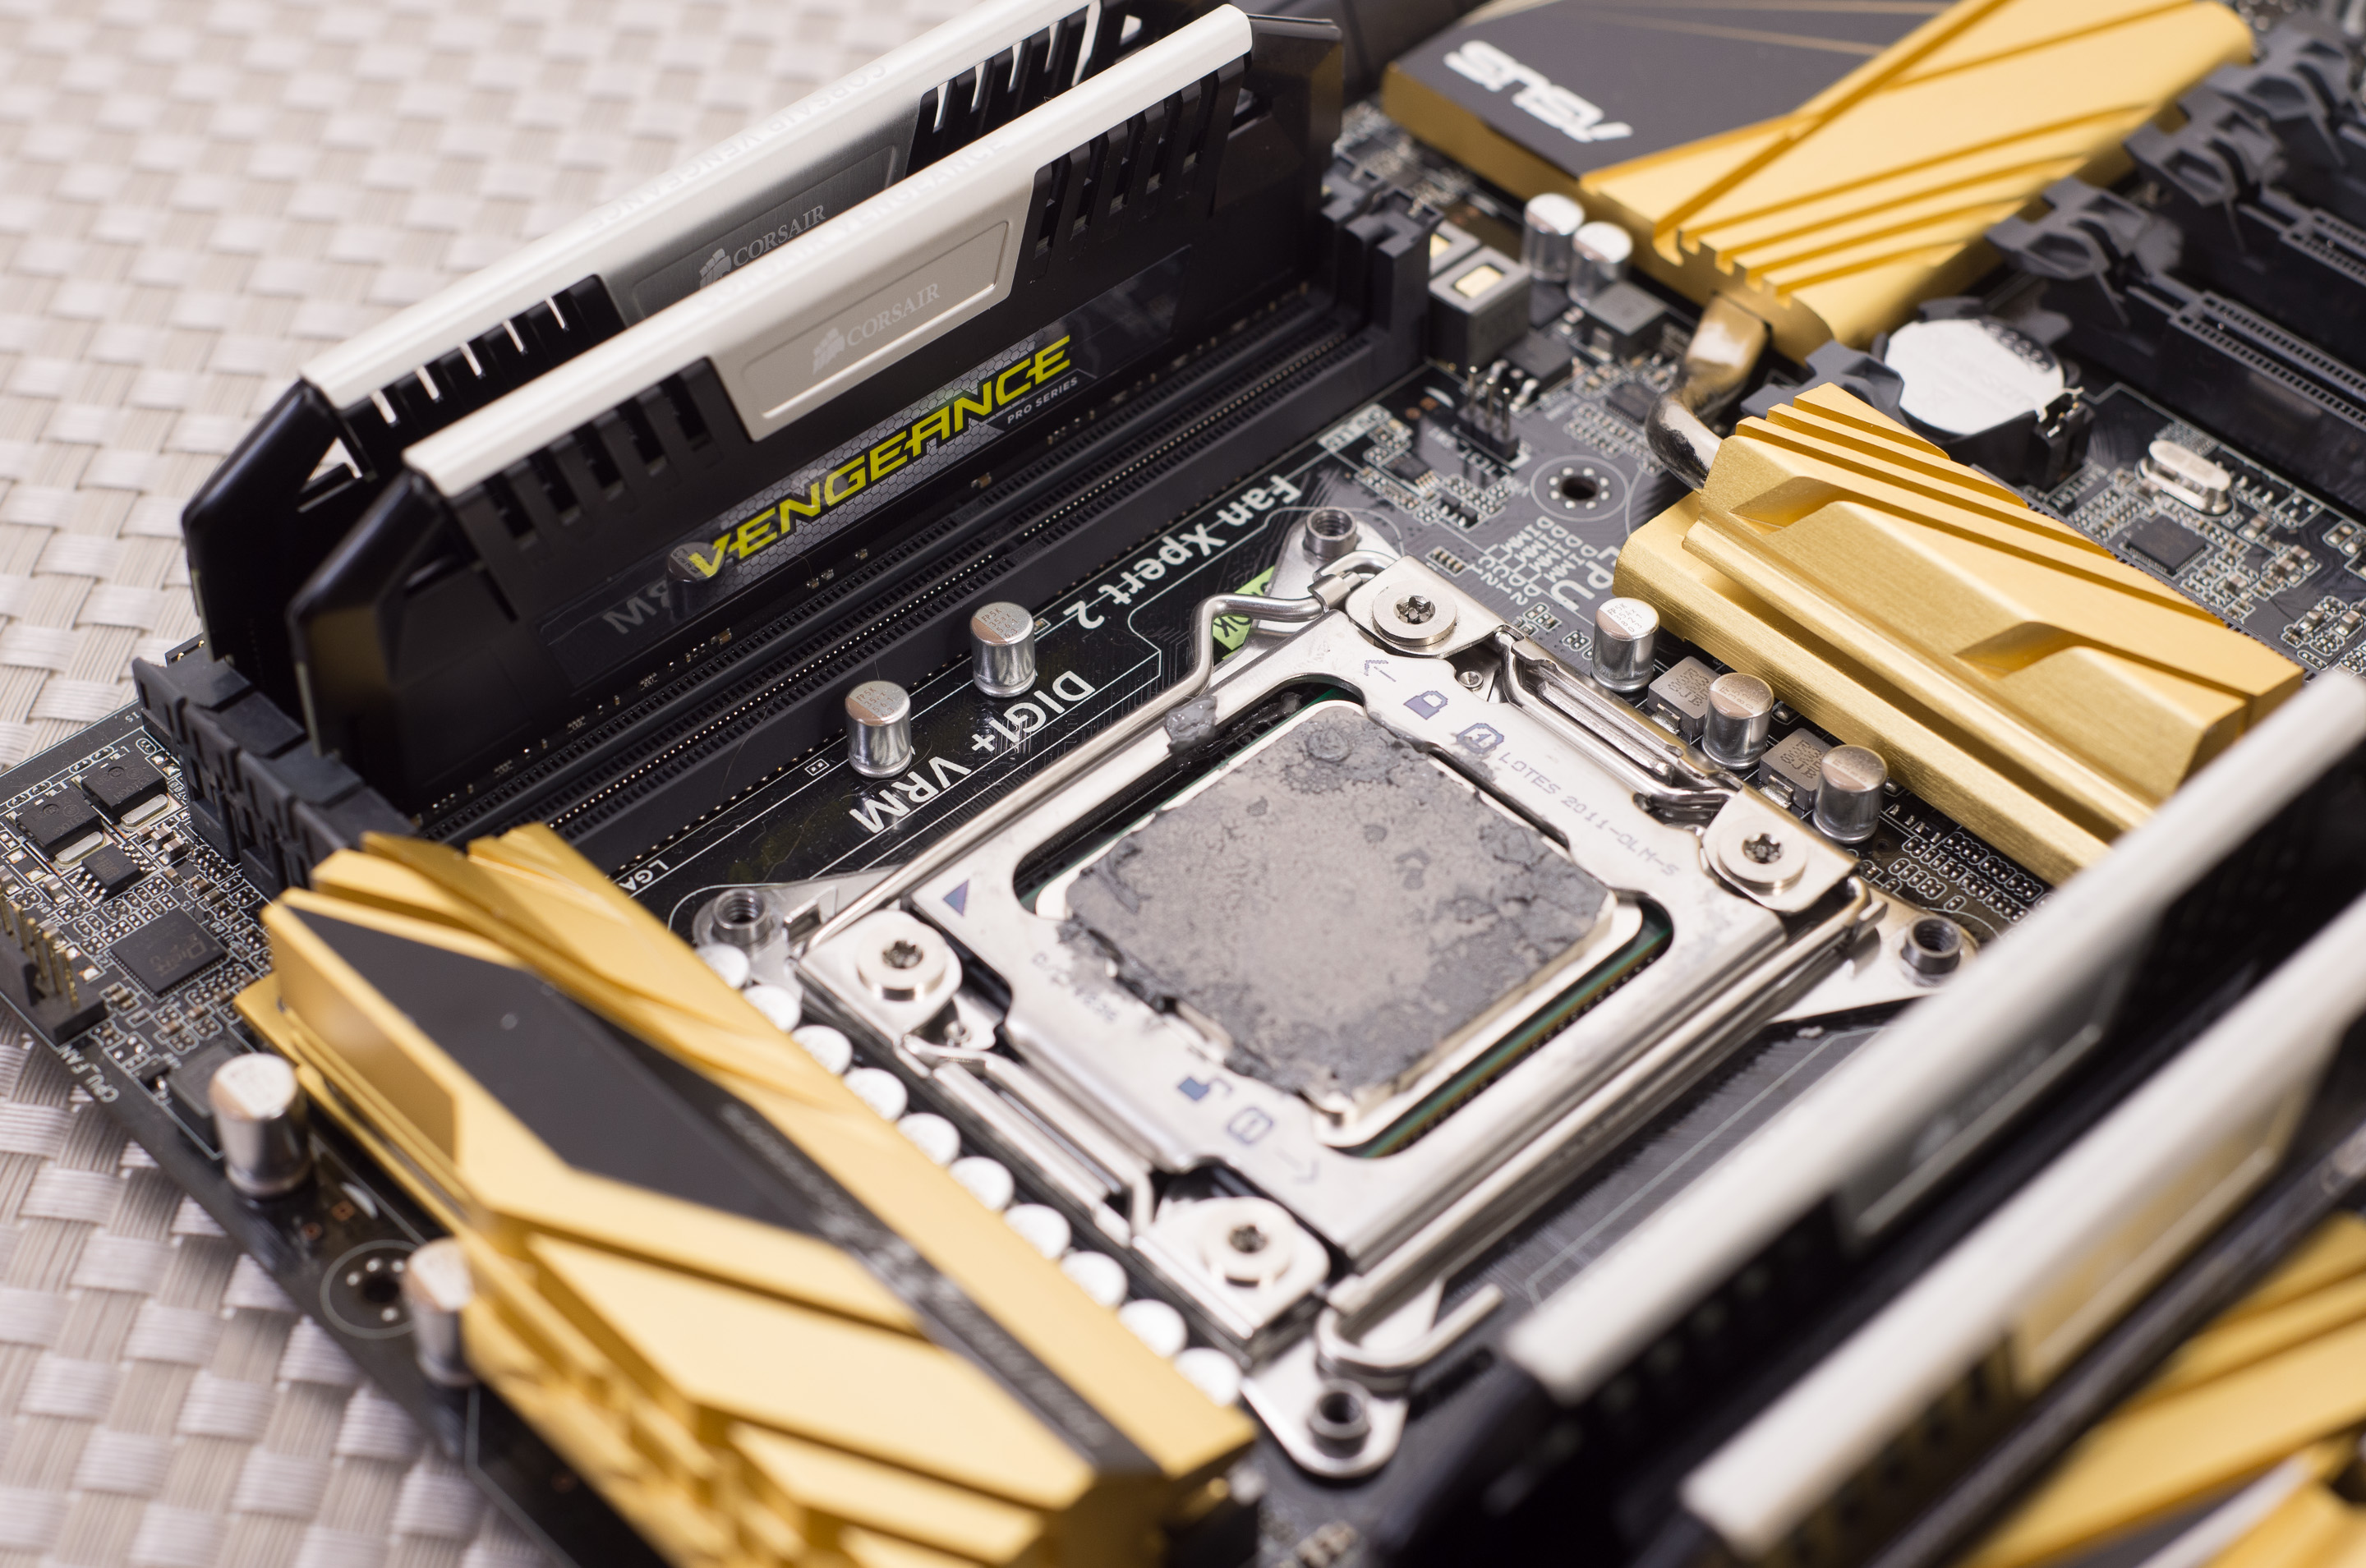 Intel Core I7 4960x Ivy Bridge E Review Motherboard Block Diagram I Have Dell Laptop The Testbed Asus New X79 Deluxe